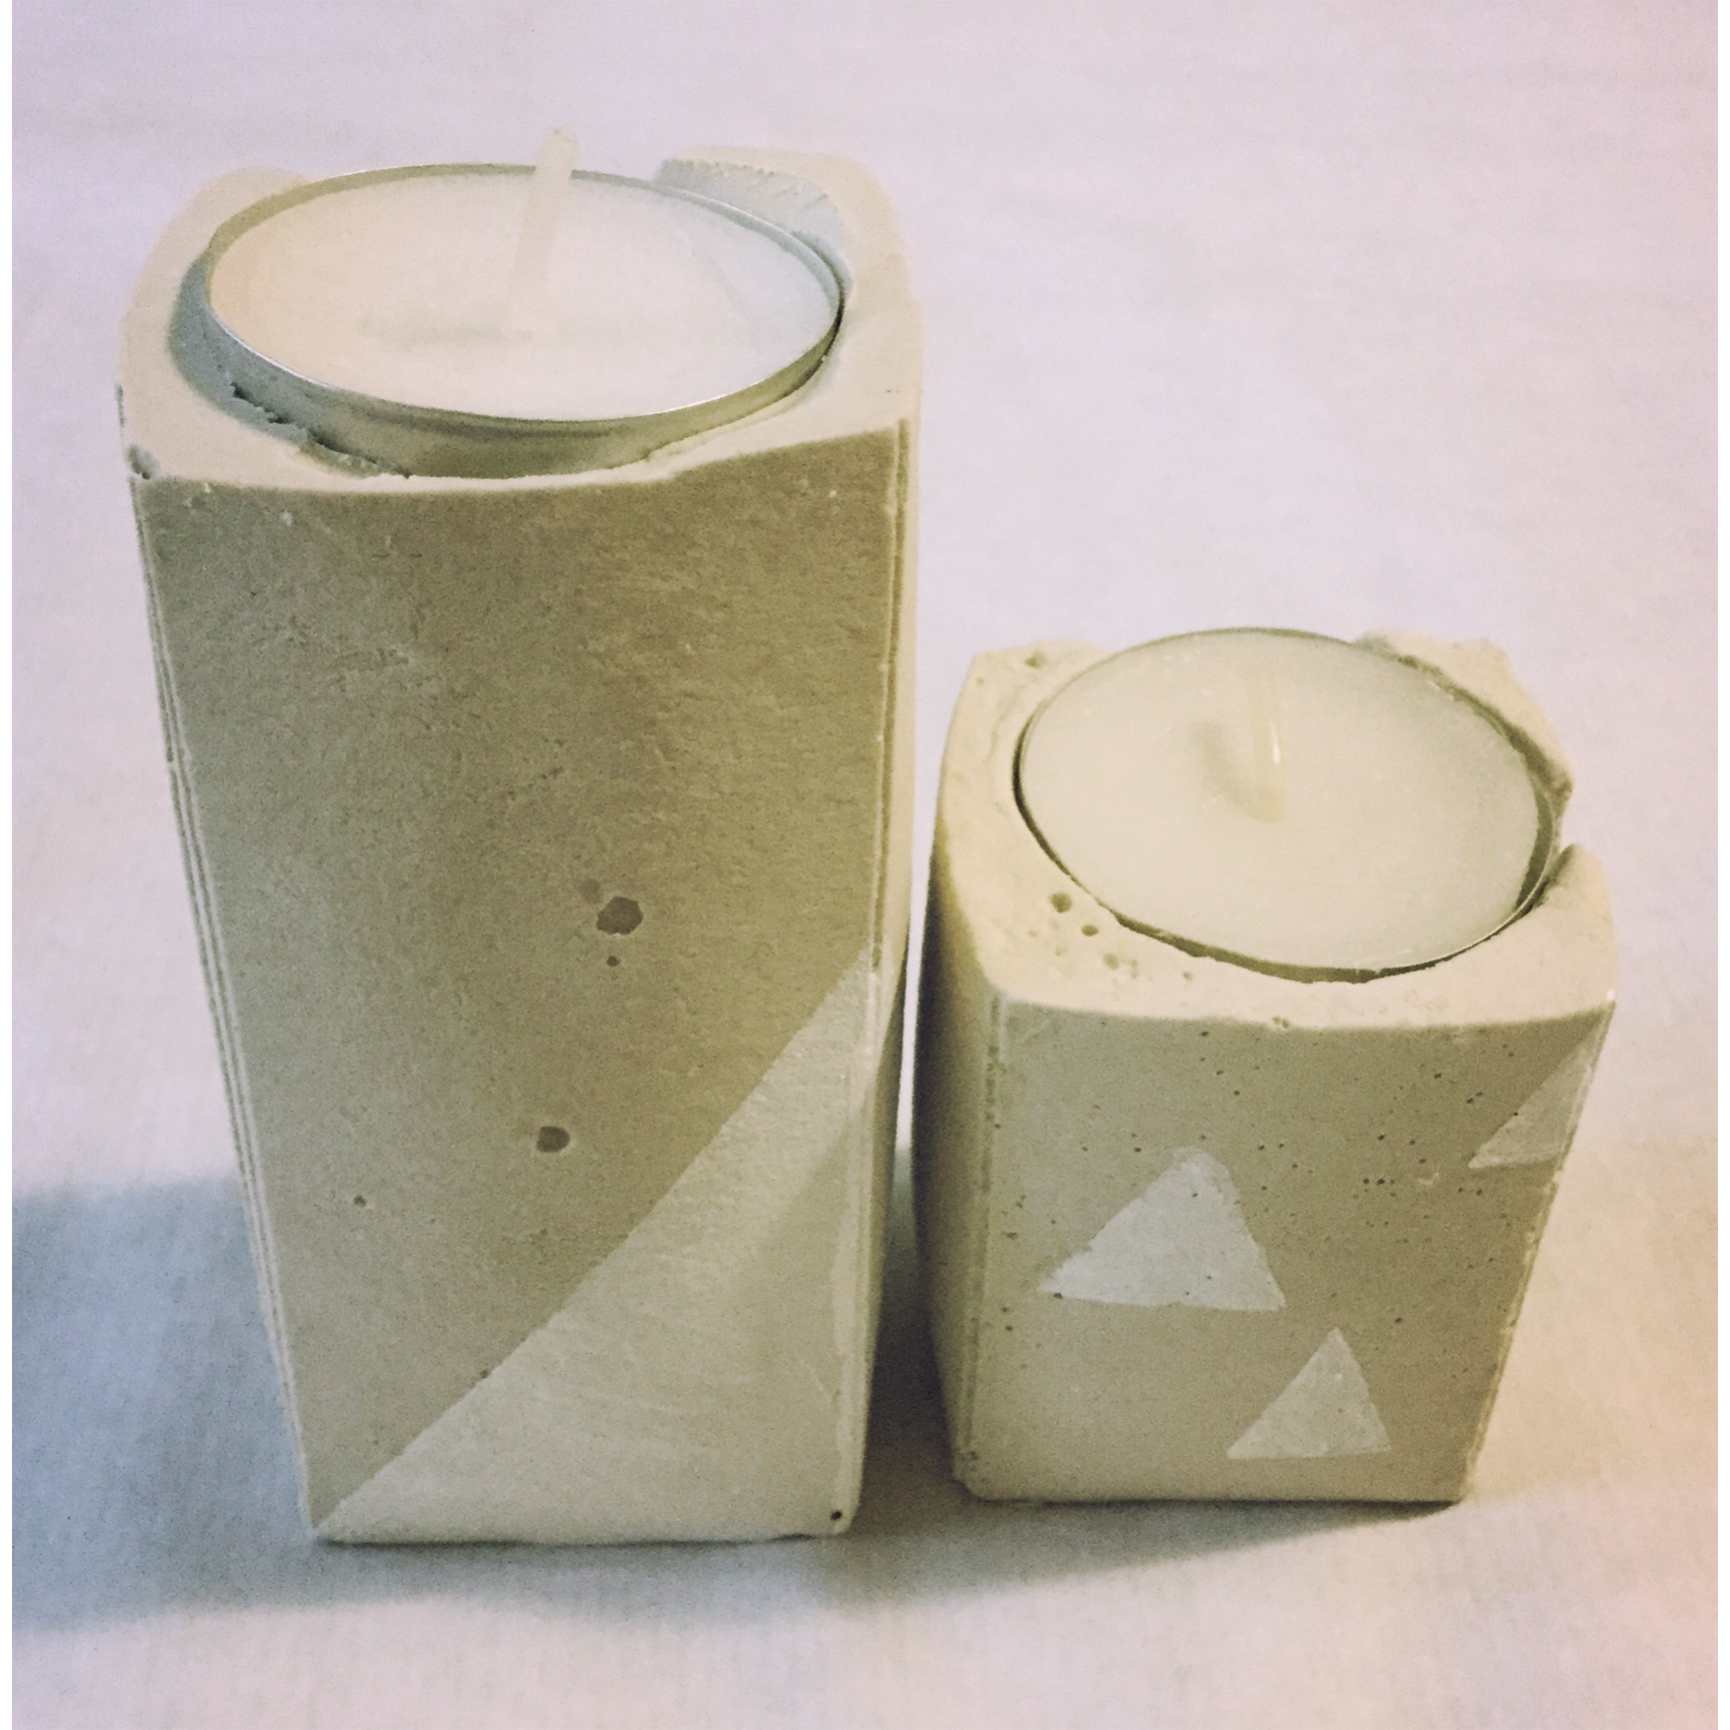 Beton Kerzenständer Diy Diy Candlestick Made Of Cement Artcreator The Dyi Blog For